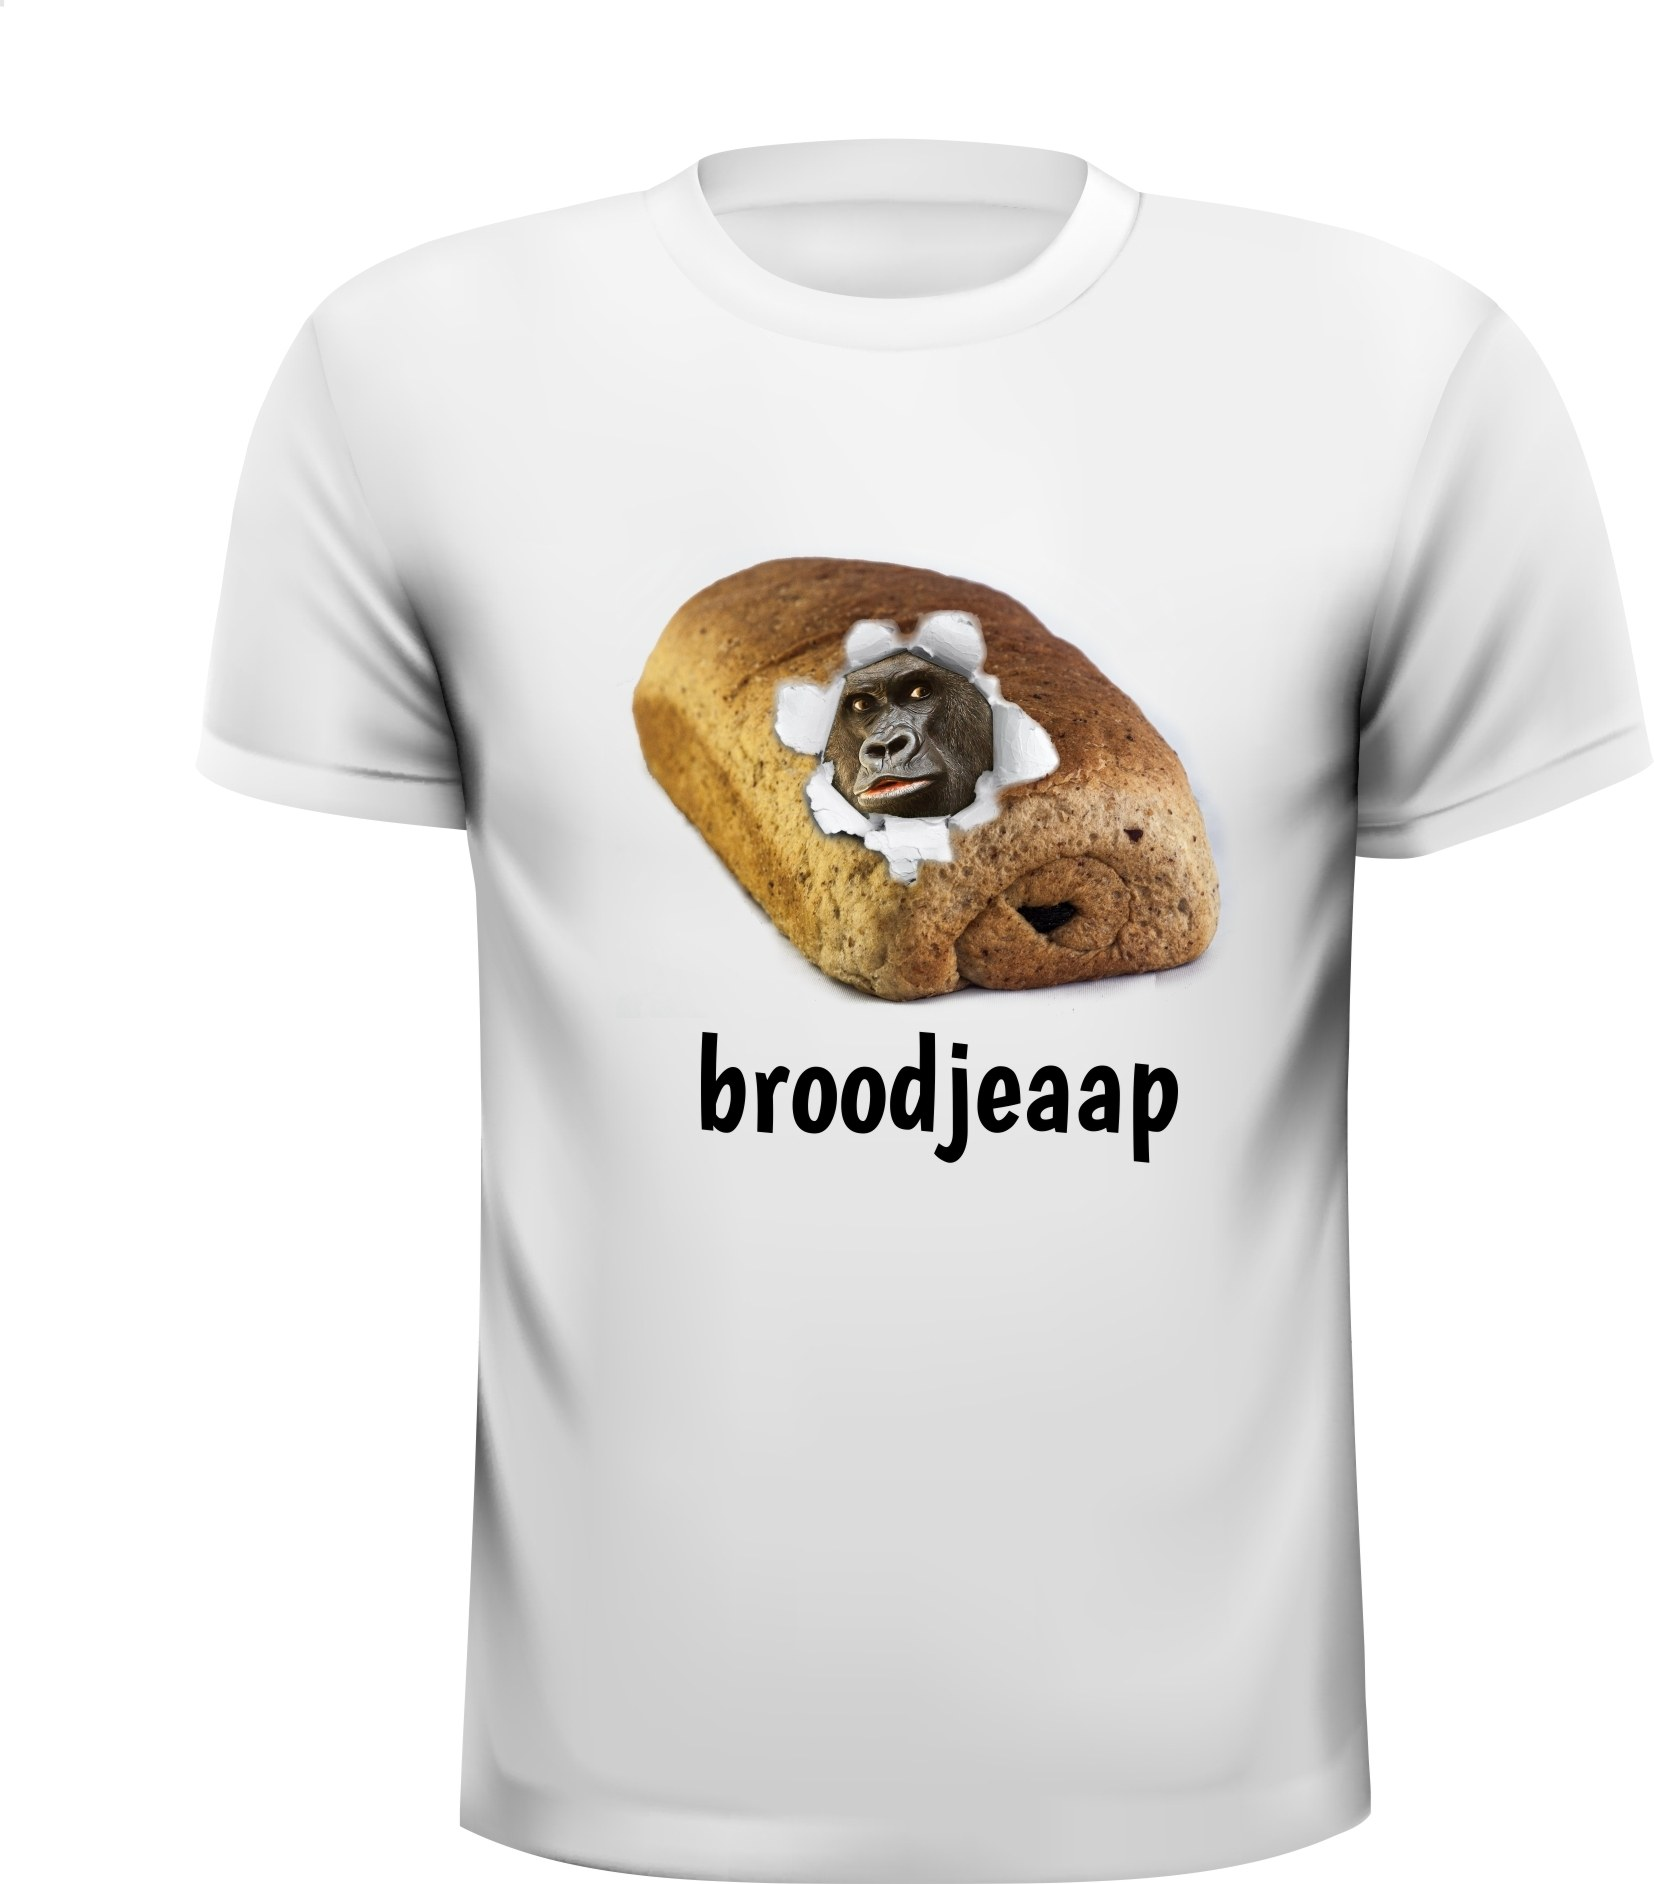 T-shirt broodjeaap broodjeaapverhaal grappig apen aap lachen